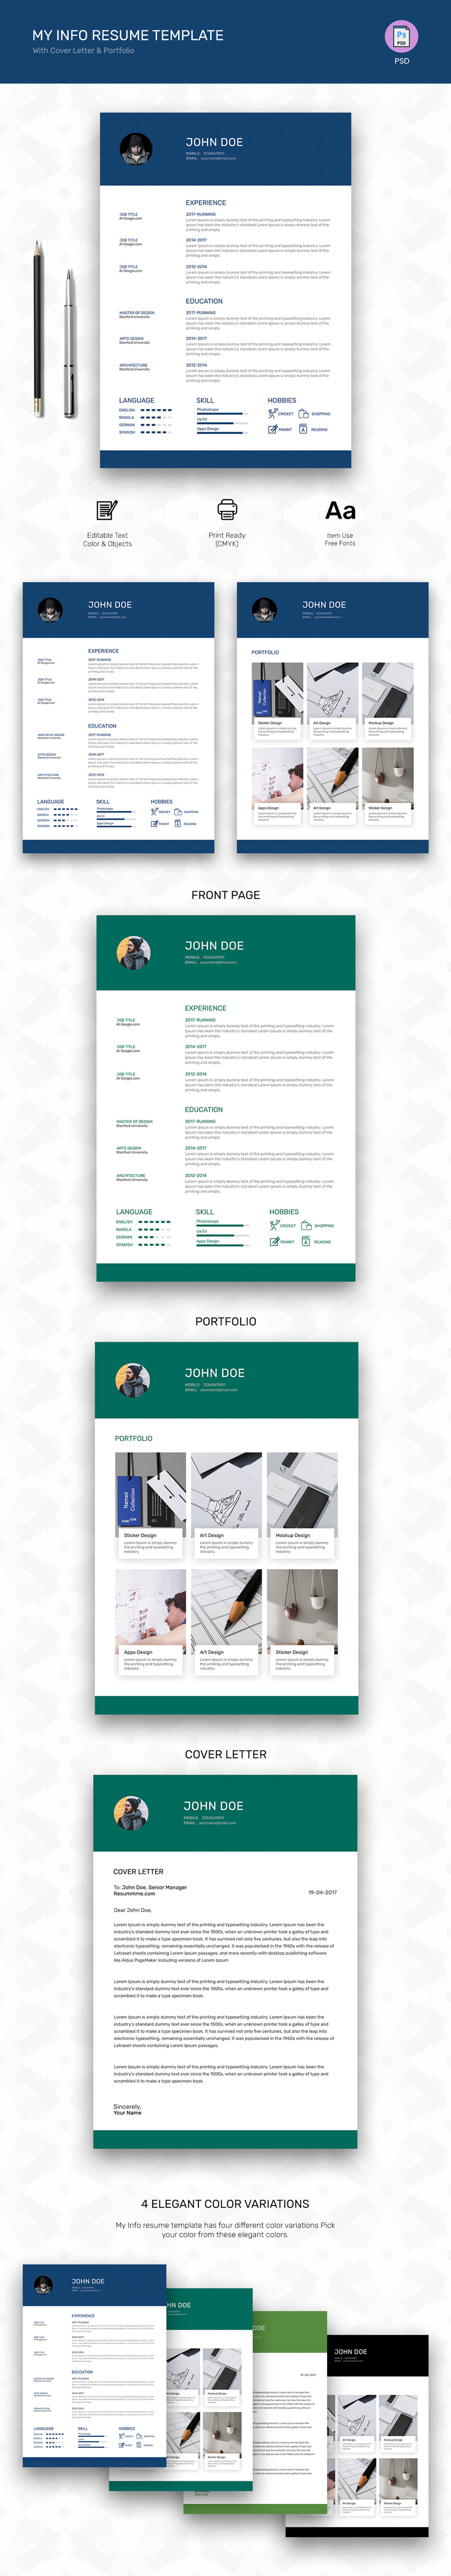 My info free resume template psd